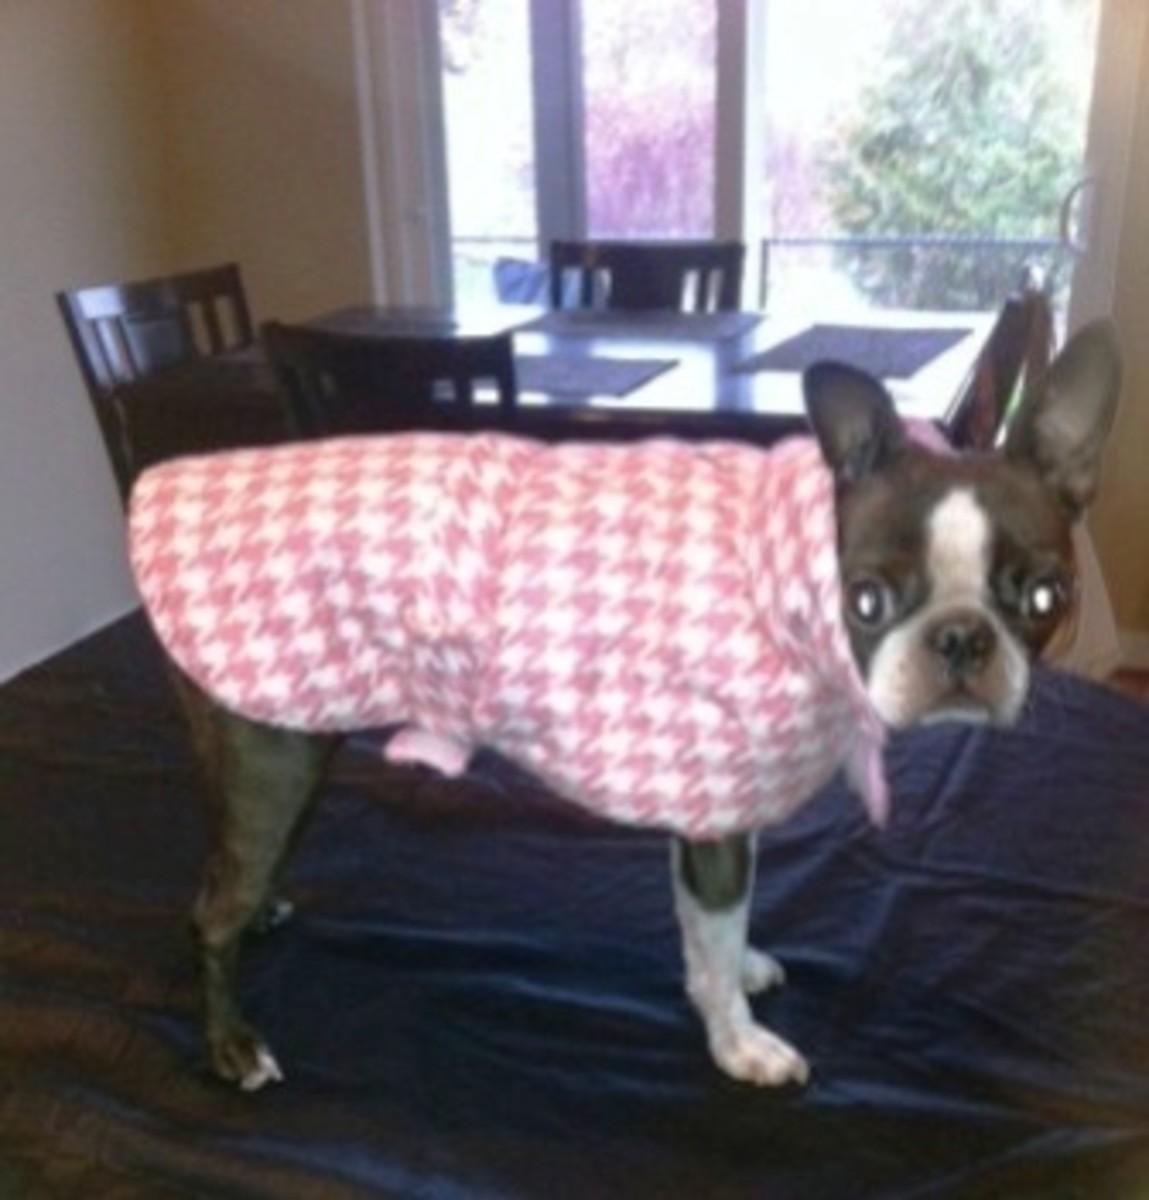 How to Fit a Boston Terrier for Clothing